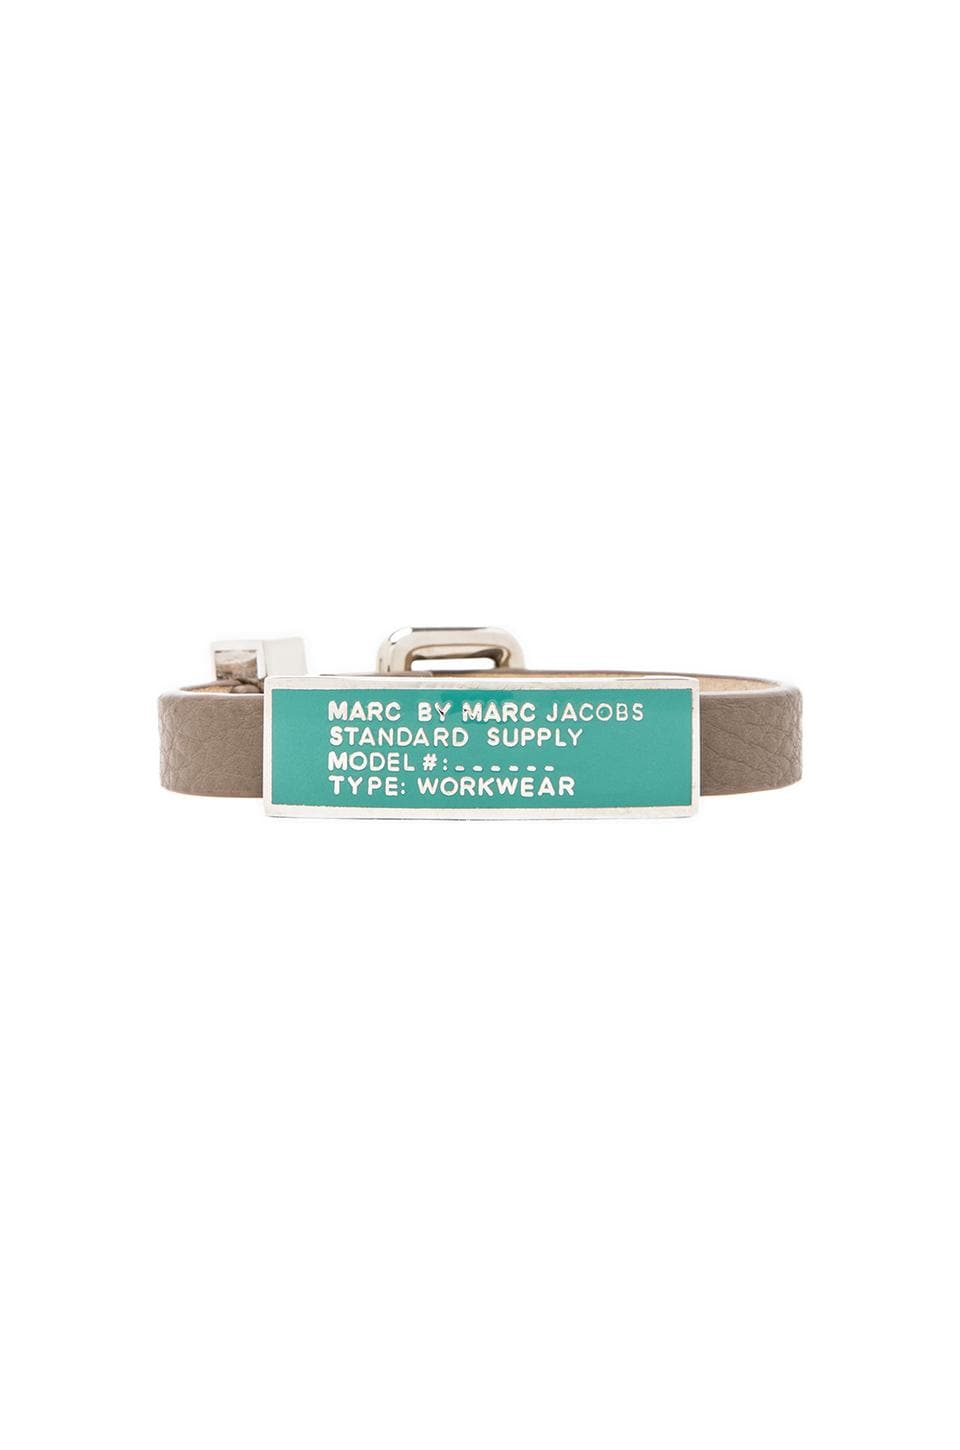 Marc by Marc Jacobs Enamel Standard Supply ID Bracelet in Warm Zinc & Aqua Lagoon (Argento)